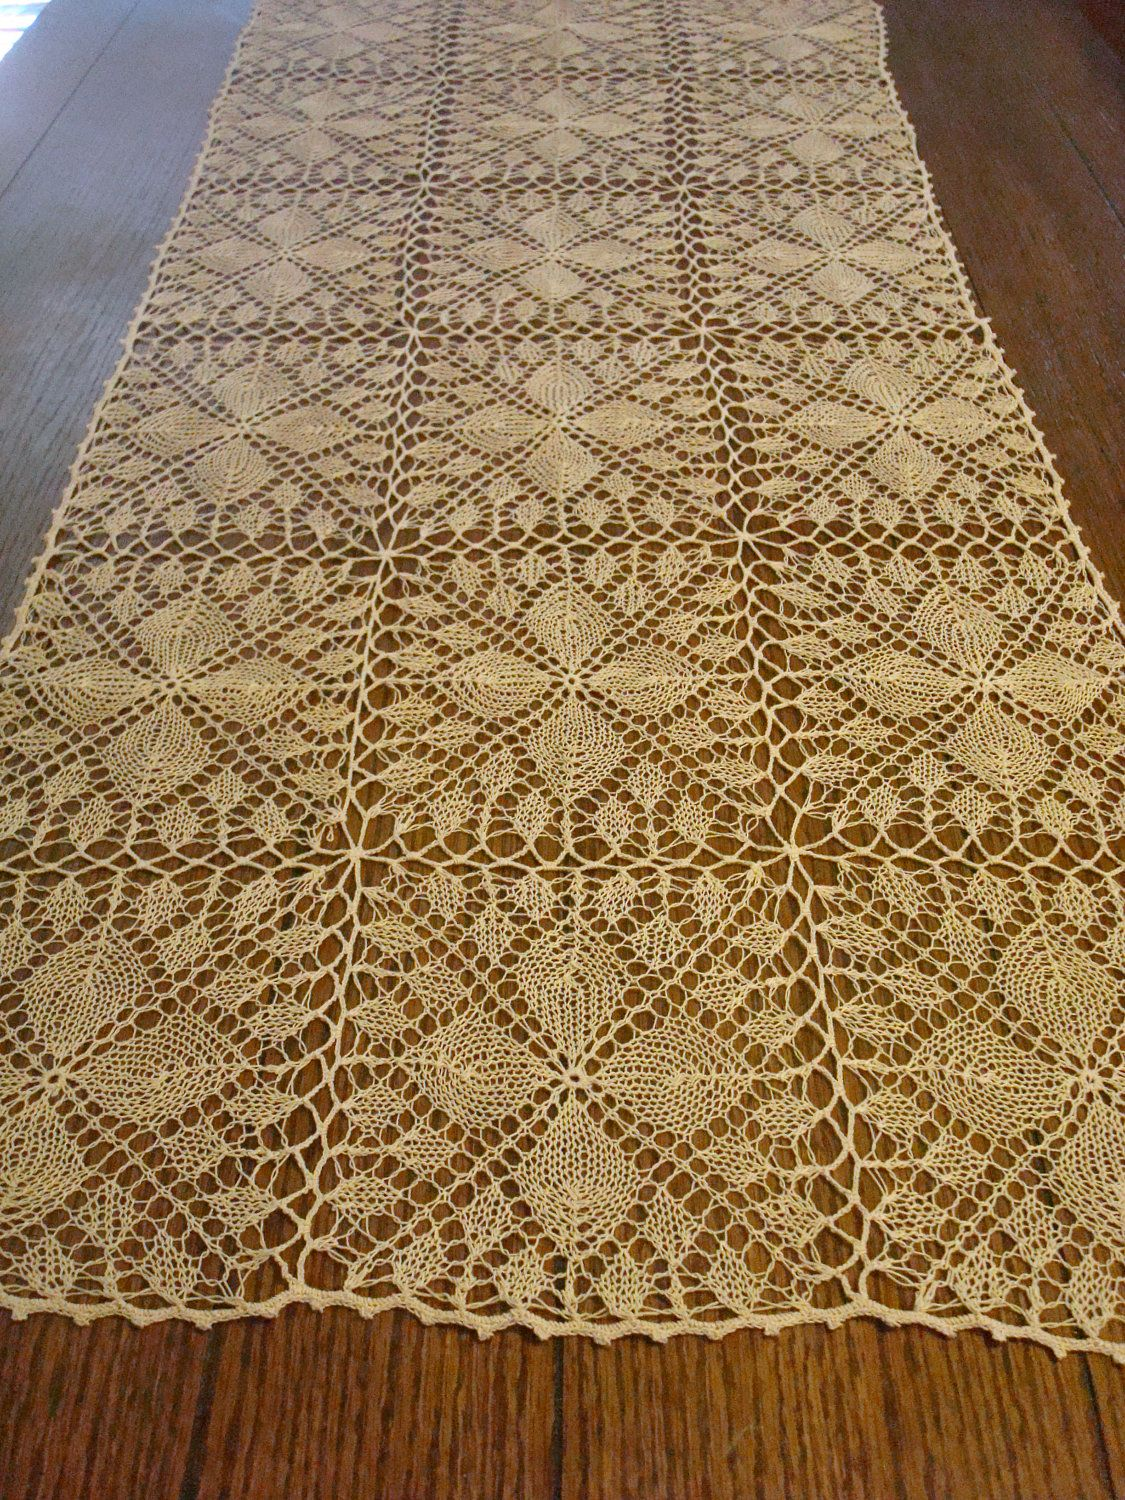 Summer Sale Hand Knitted Table Runner- Tan Color | Pinterest ...